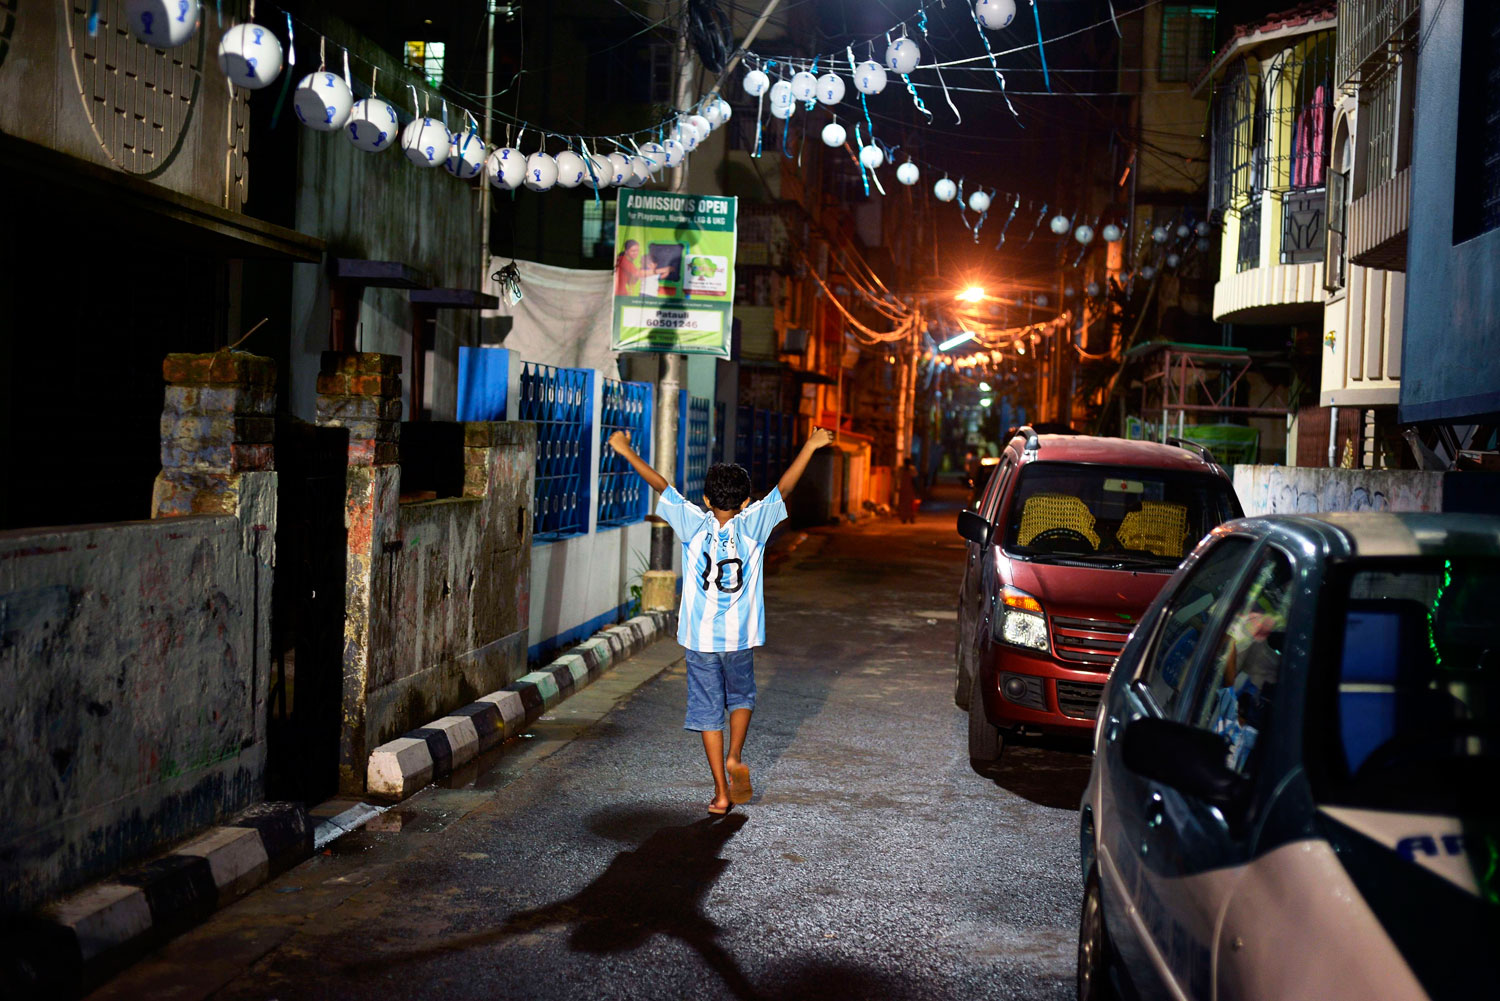 A young Indian football fan of Argentina in a Lionel Messi shirt walks back home after watching the Argentina-Iran match on a giant screen in Kolkata.